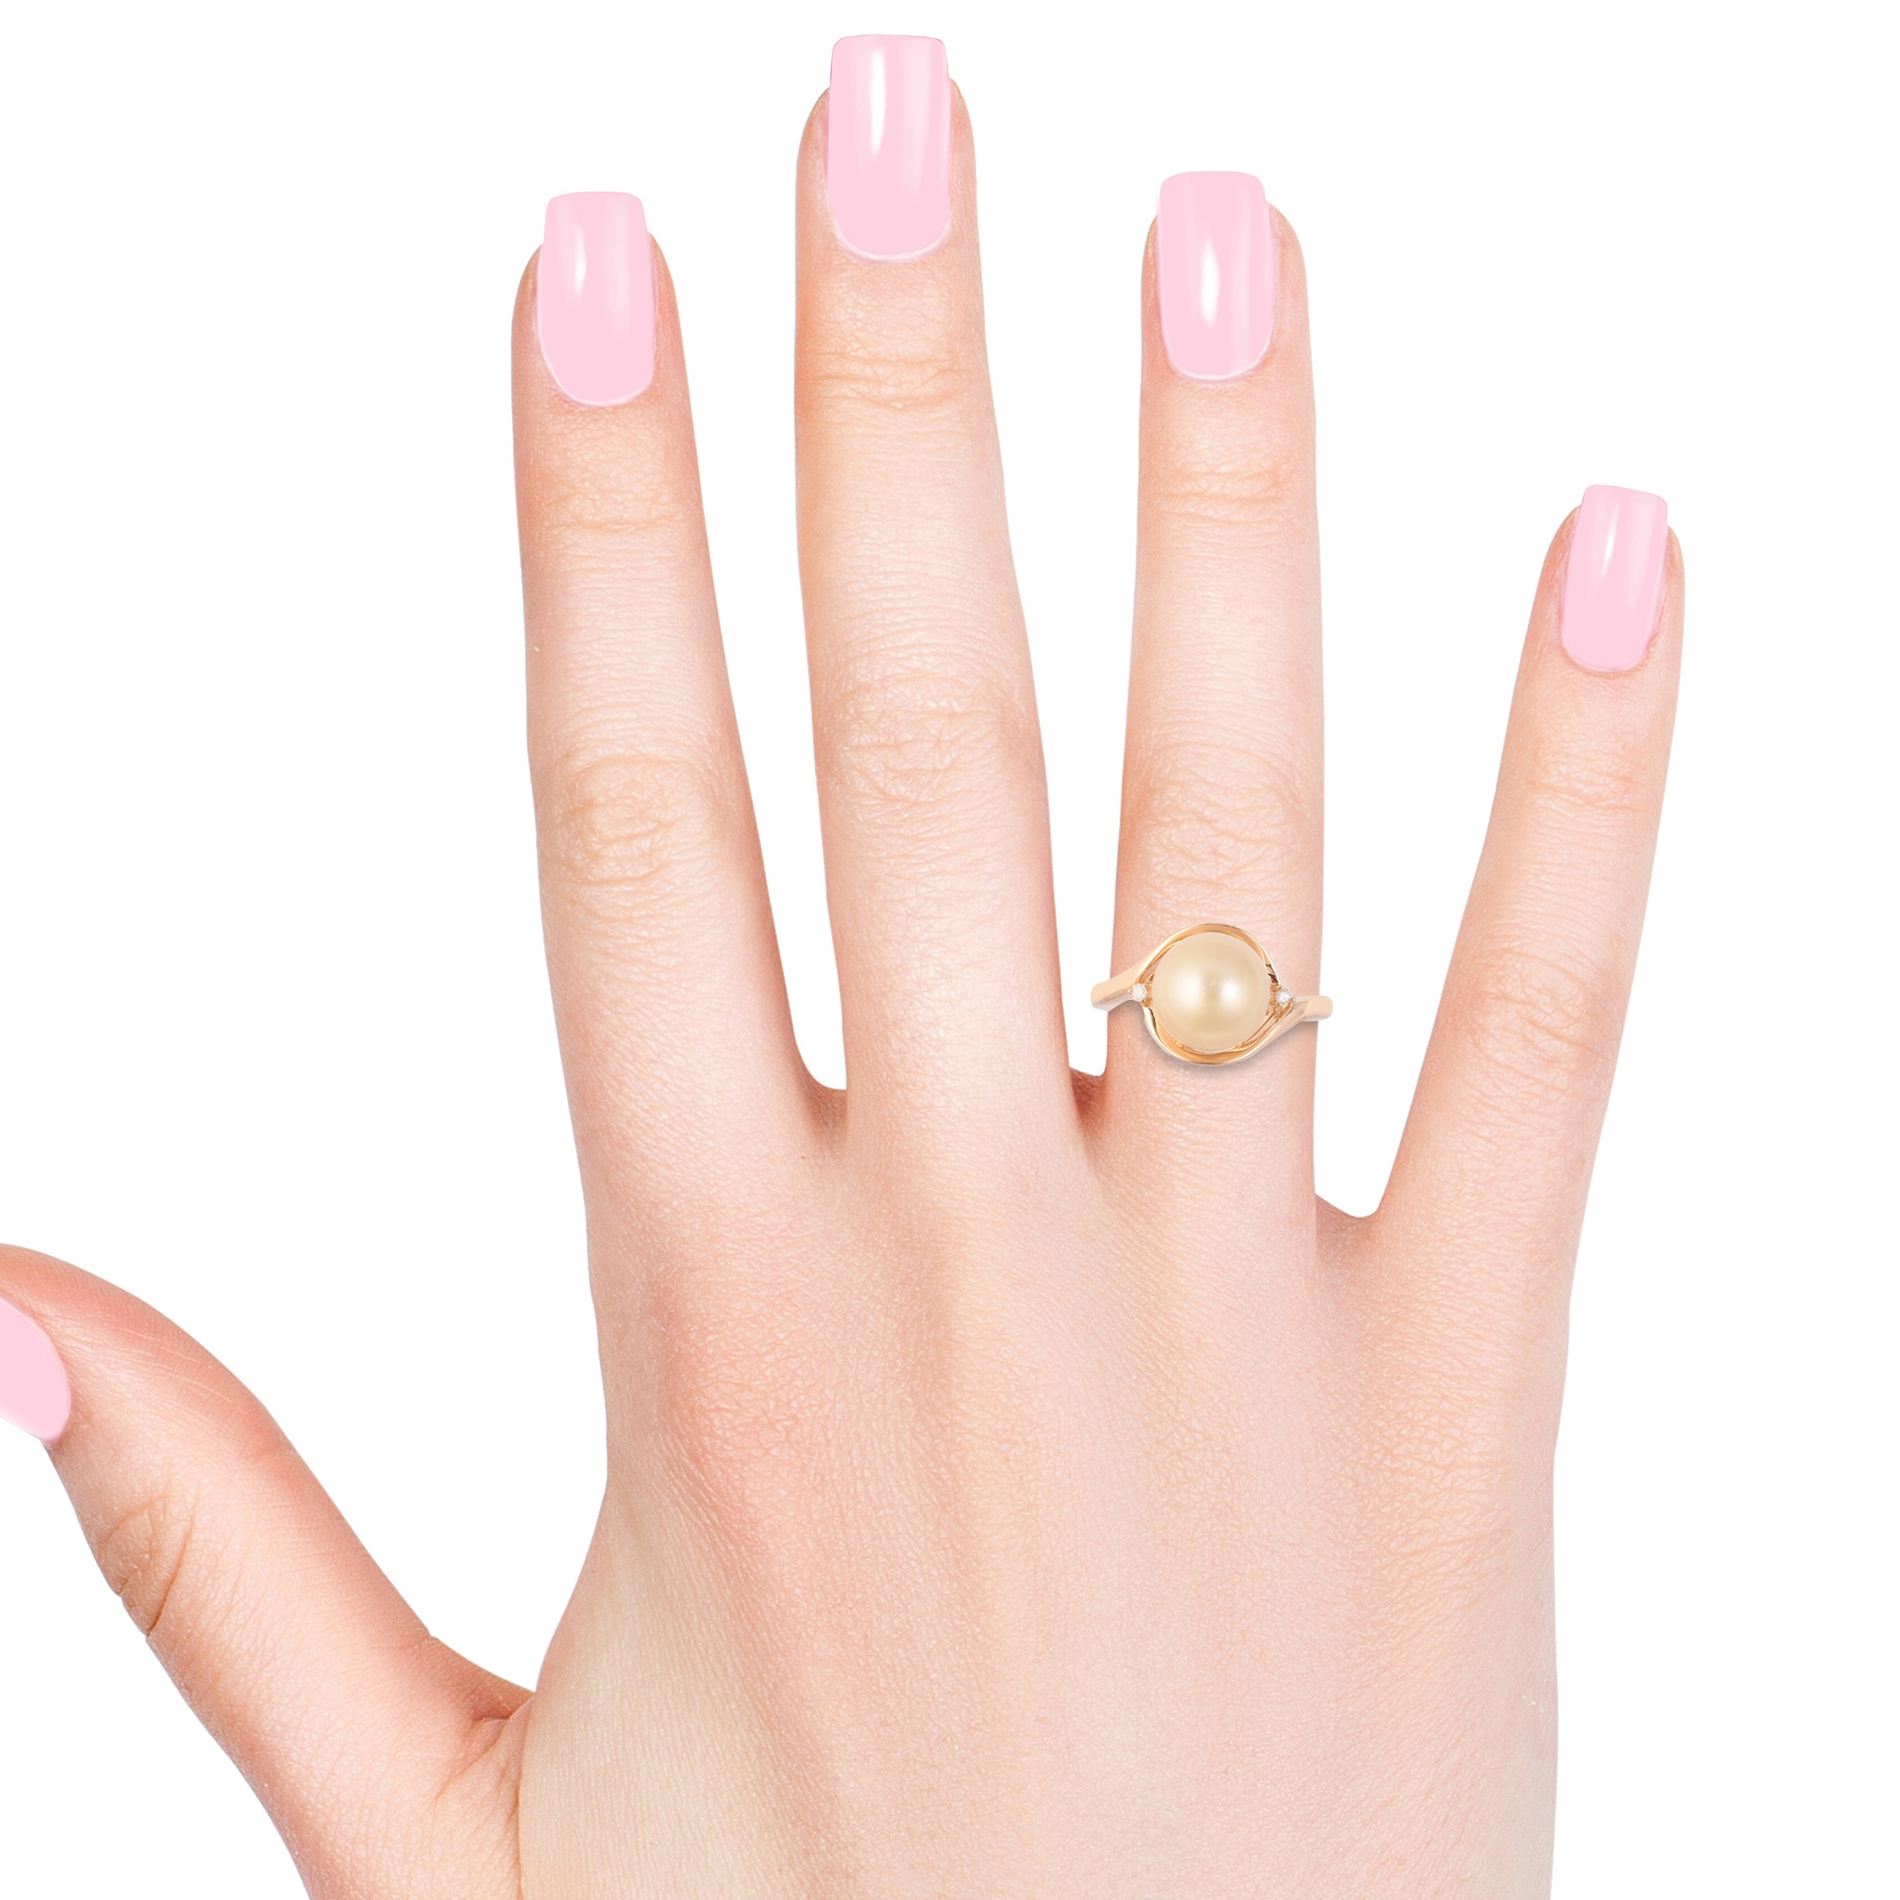 South Sea Golden Cultured Pearl (10-11 mm), Diamond Accent Ring in Vermeil YG Over Sterling Silver (Size 7.0)